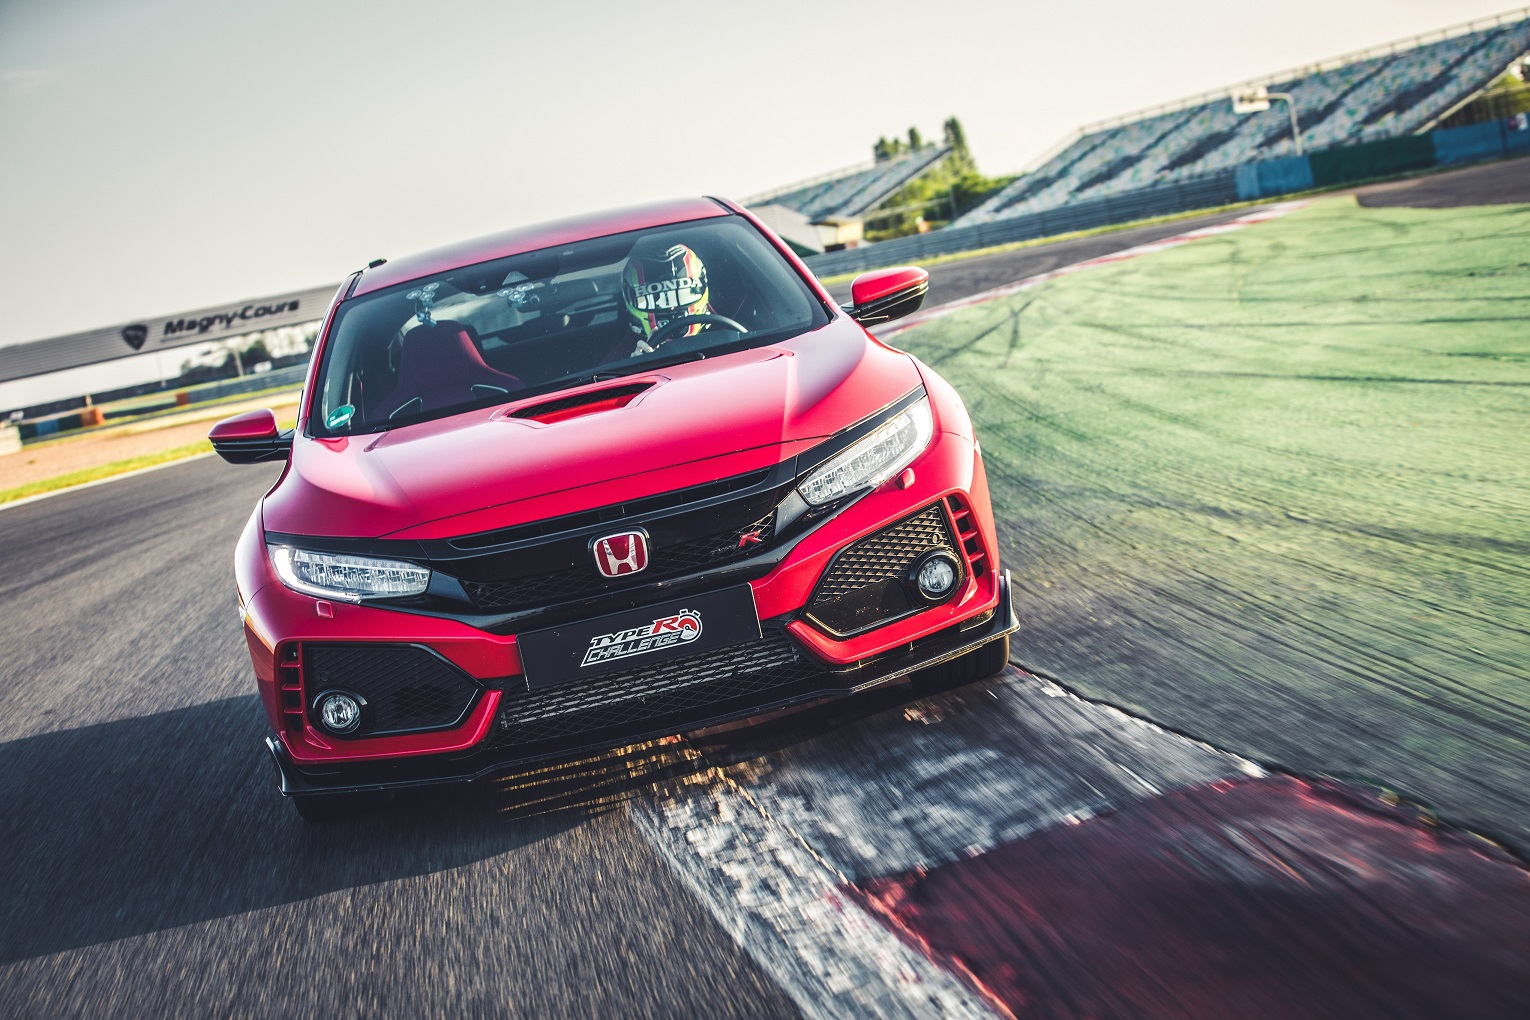 130453 Type R Challenge 2018 Is Go Honda Sets New Lap Record At Magny Cours GP